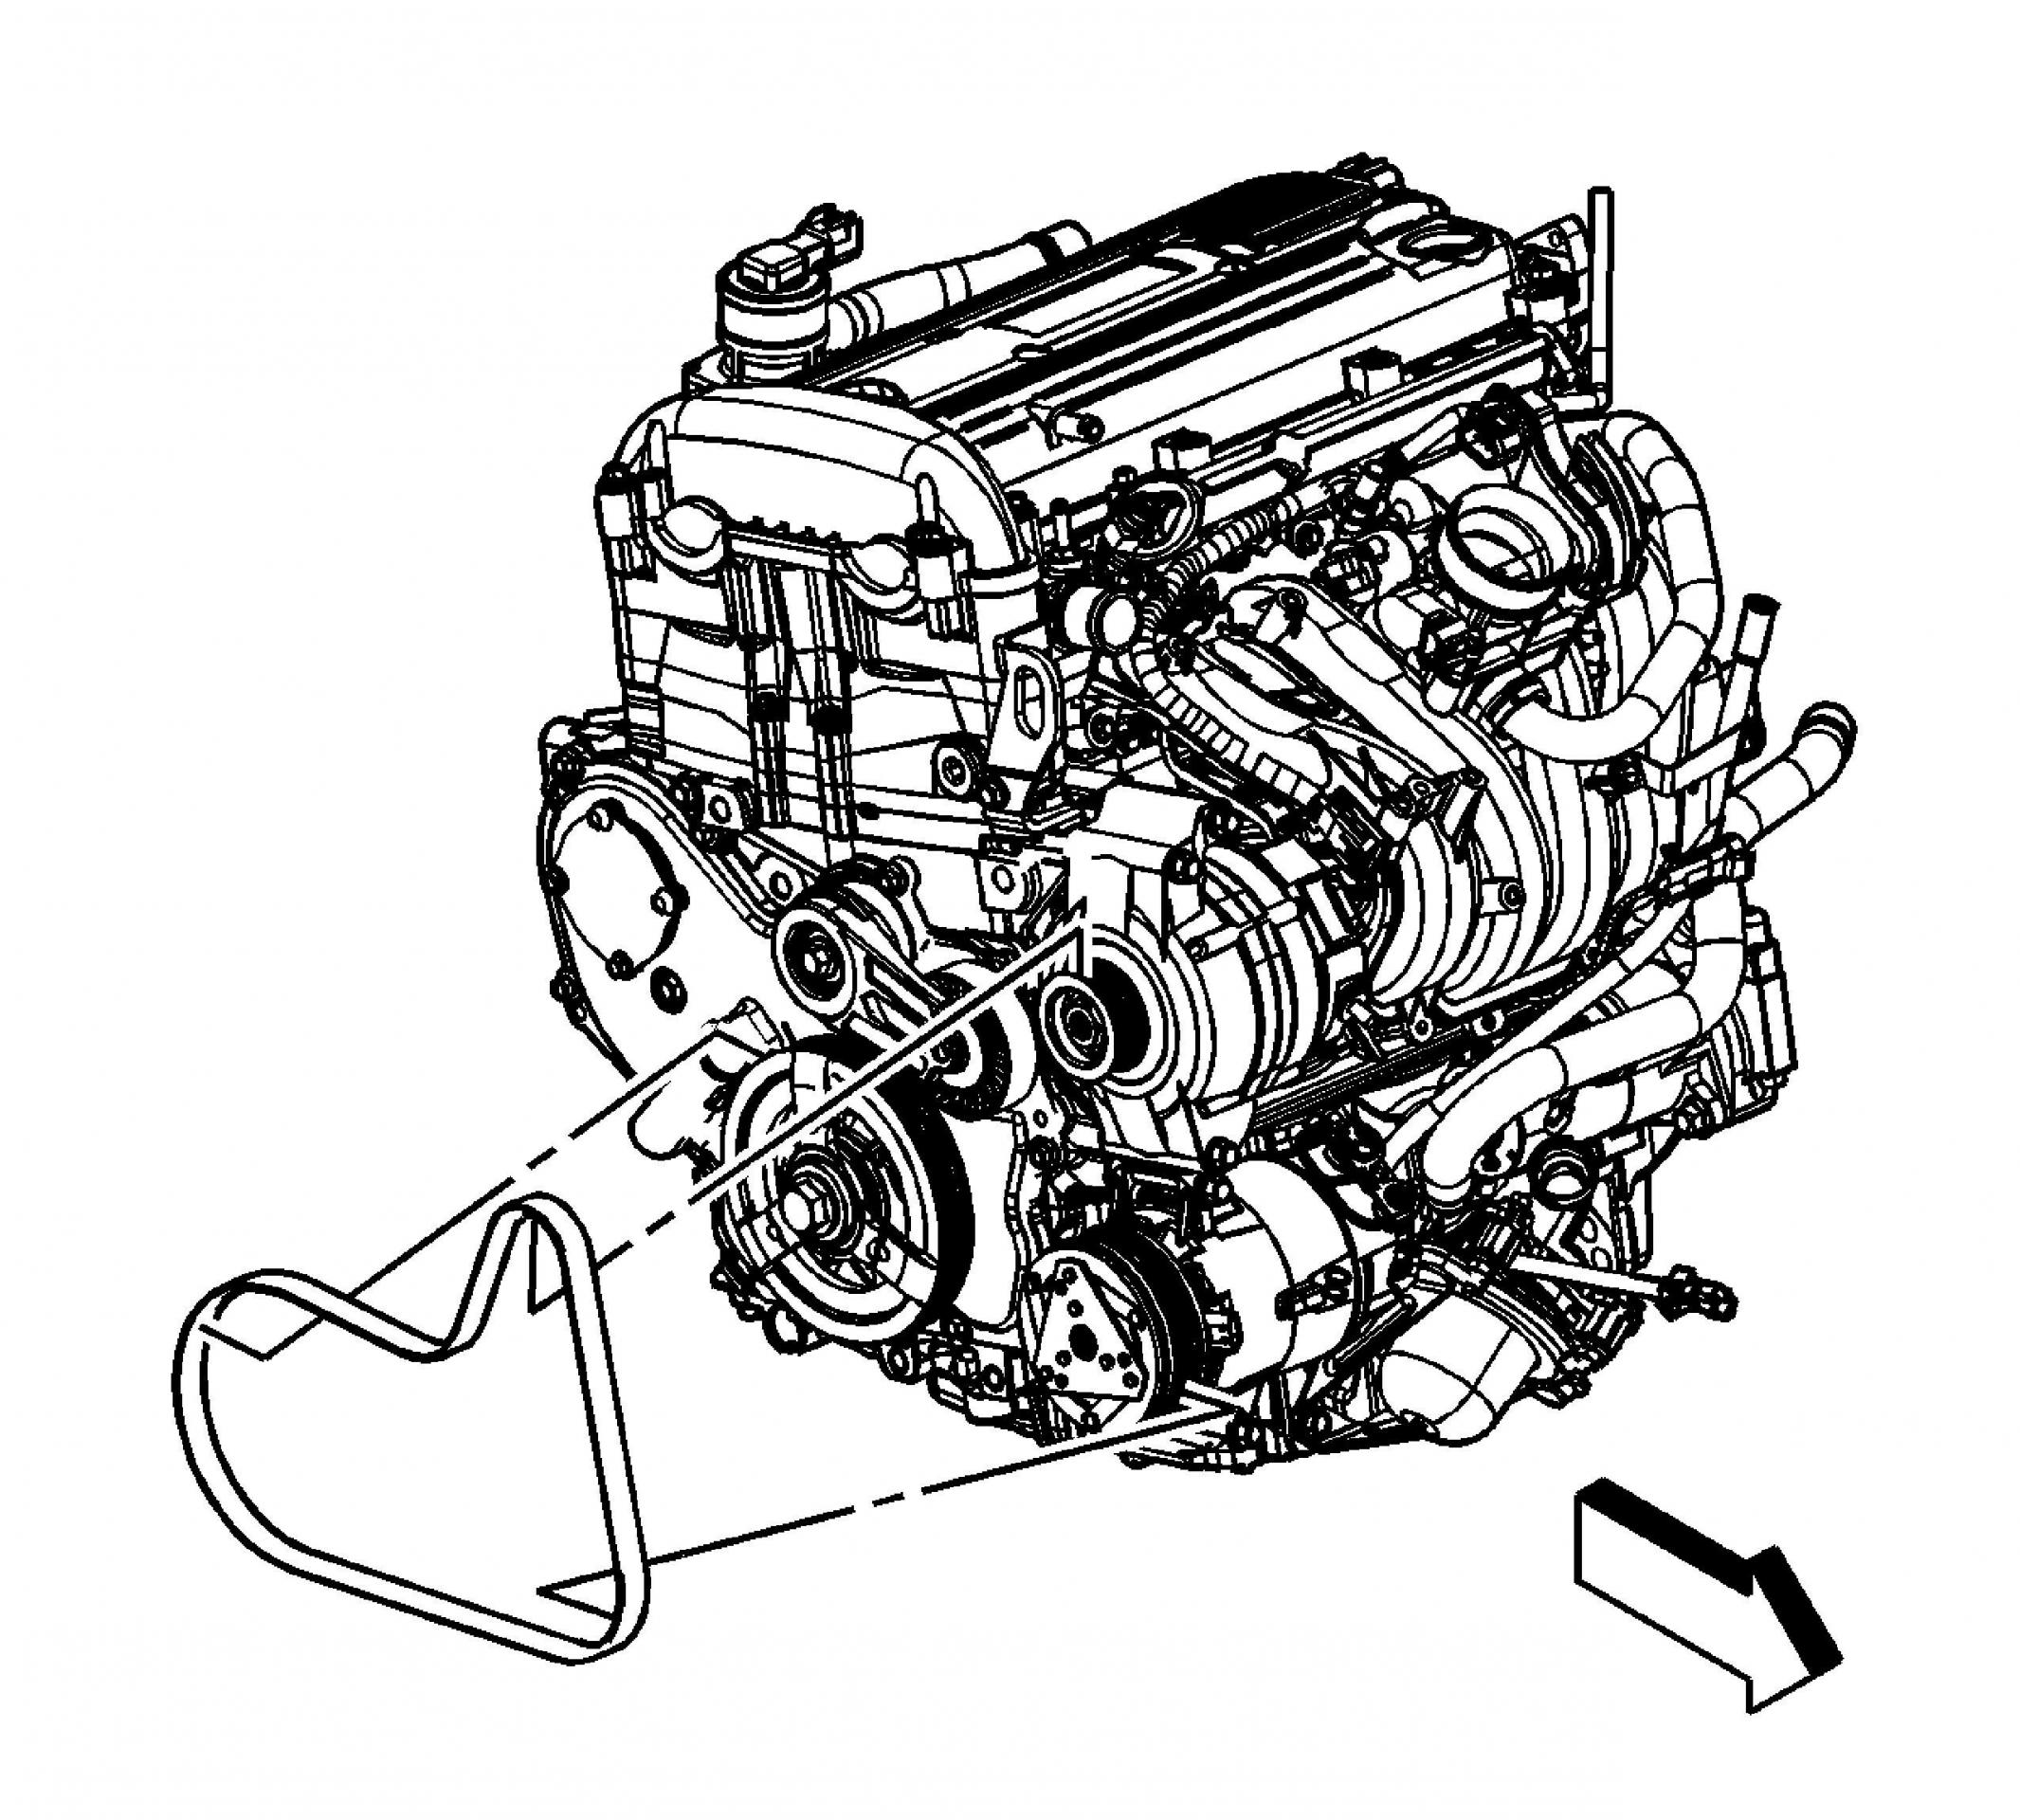 [WRG-5461] 2010 Chevy Equinox Engine Diagram